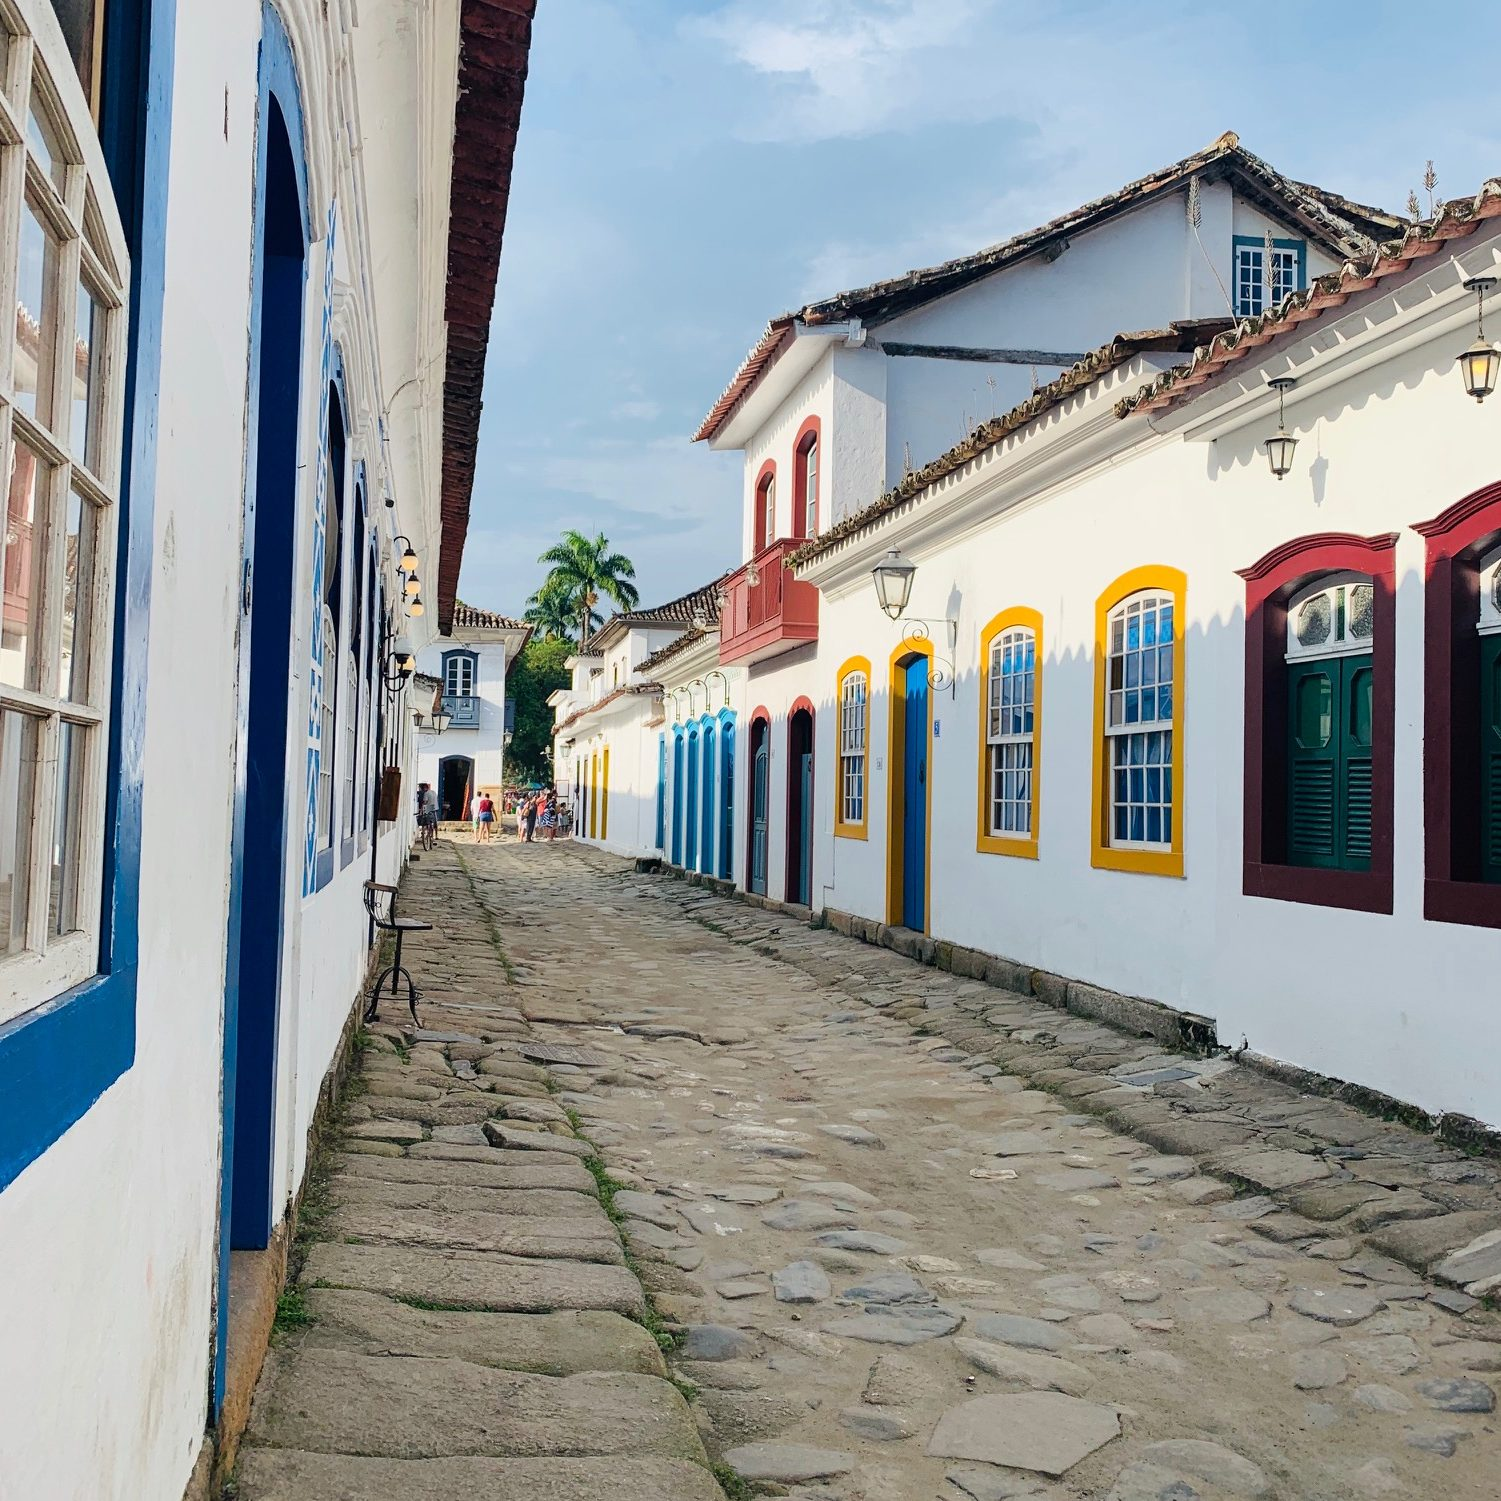 I lost my brand new earrings in Paraty, Brazil.